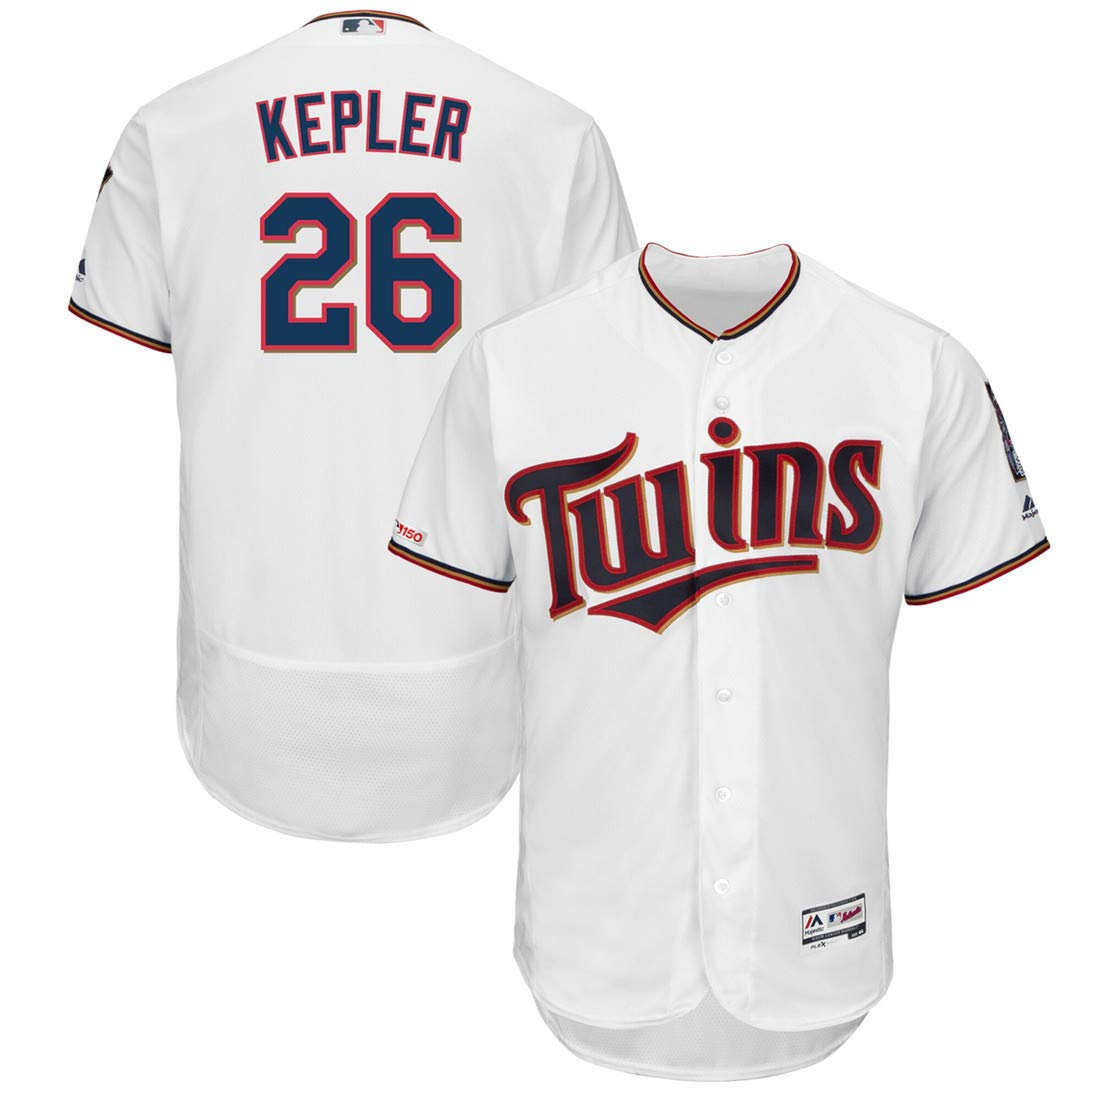 Outerstuff Youth Kids 26 Max Kepler Minnesota Twins Baseball Jersey